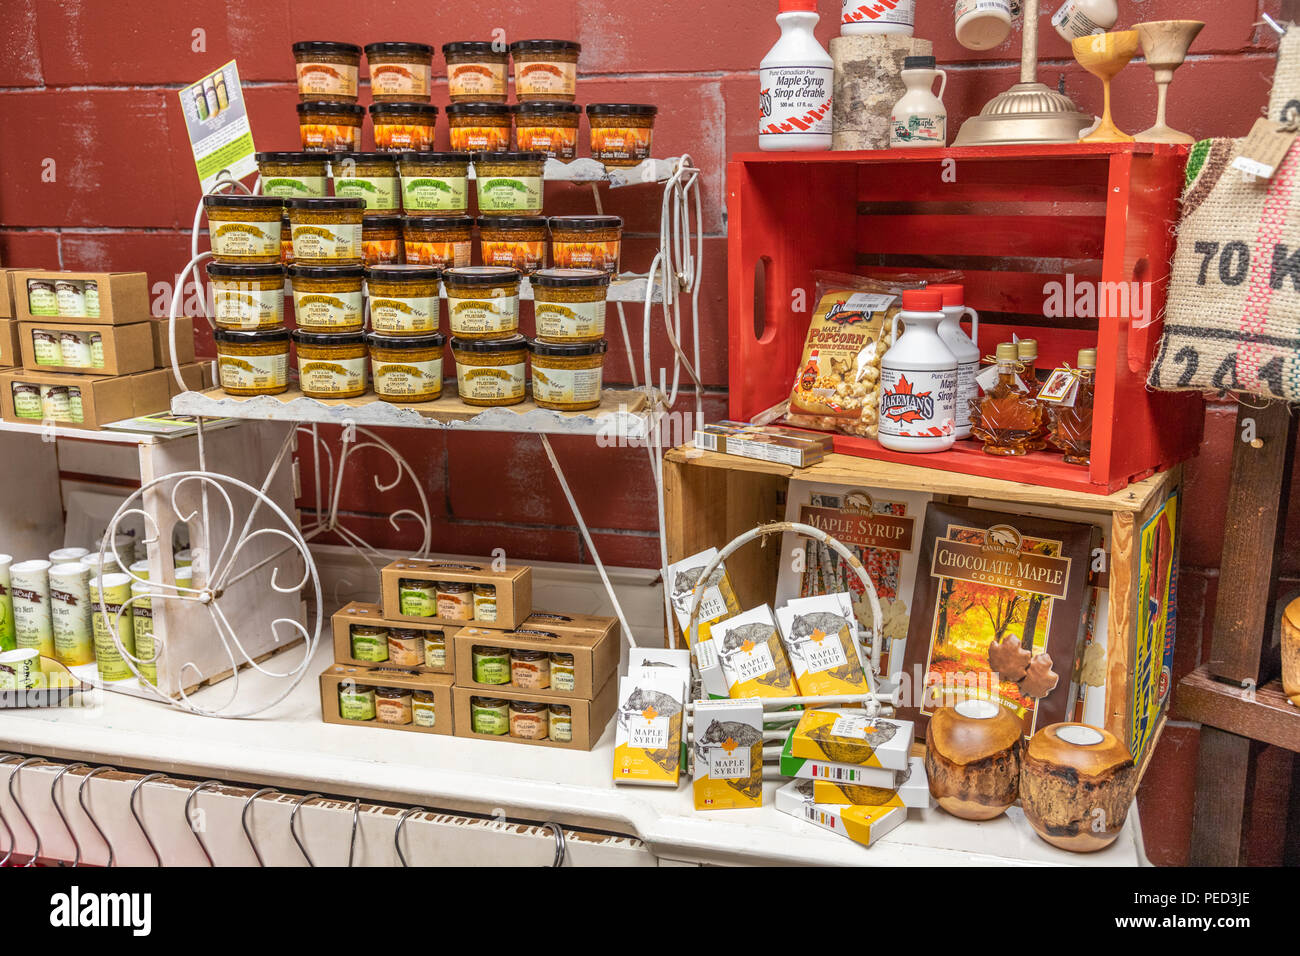 Display of mustard and maple syrup in the Artisans Attic and Fudgery Gift Shoppe in the town of Hope, British Columbia, Canada - Stock Image